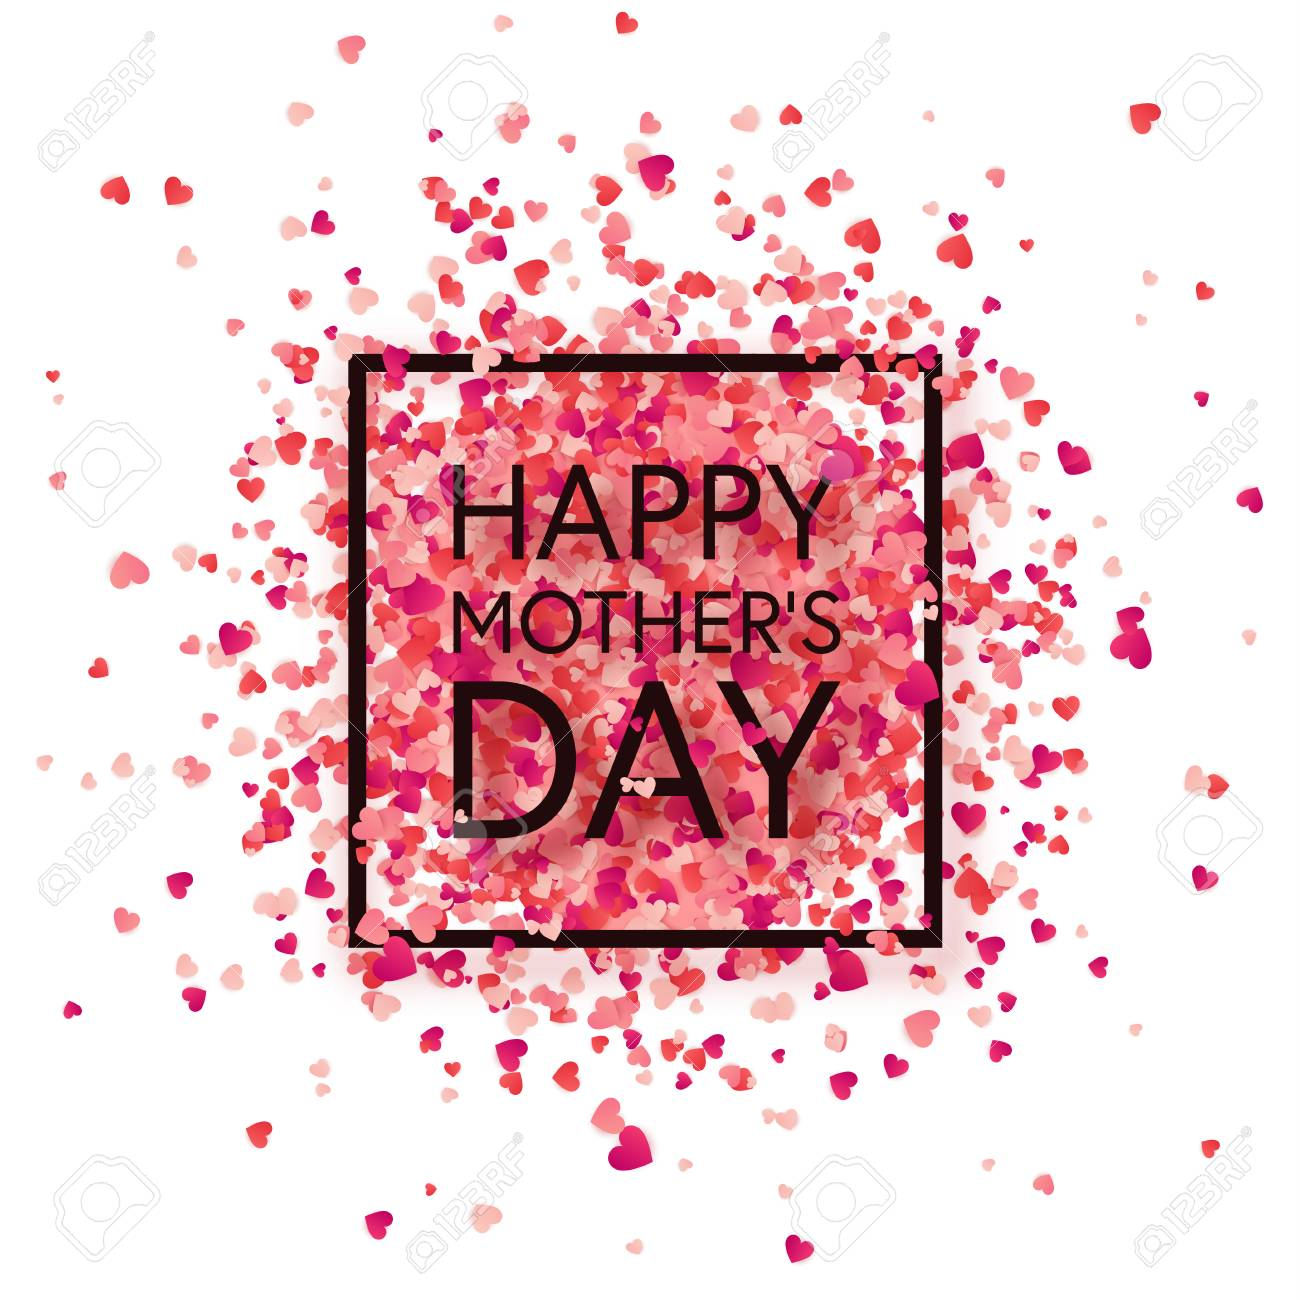 Mothers day background with red hearts. Greeting card, template with lettering. - 98850011